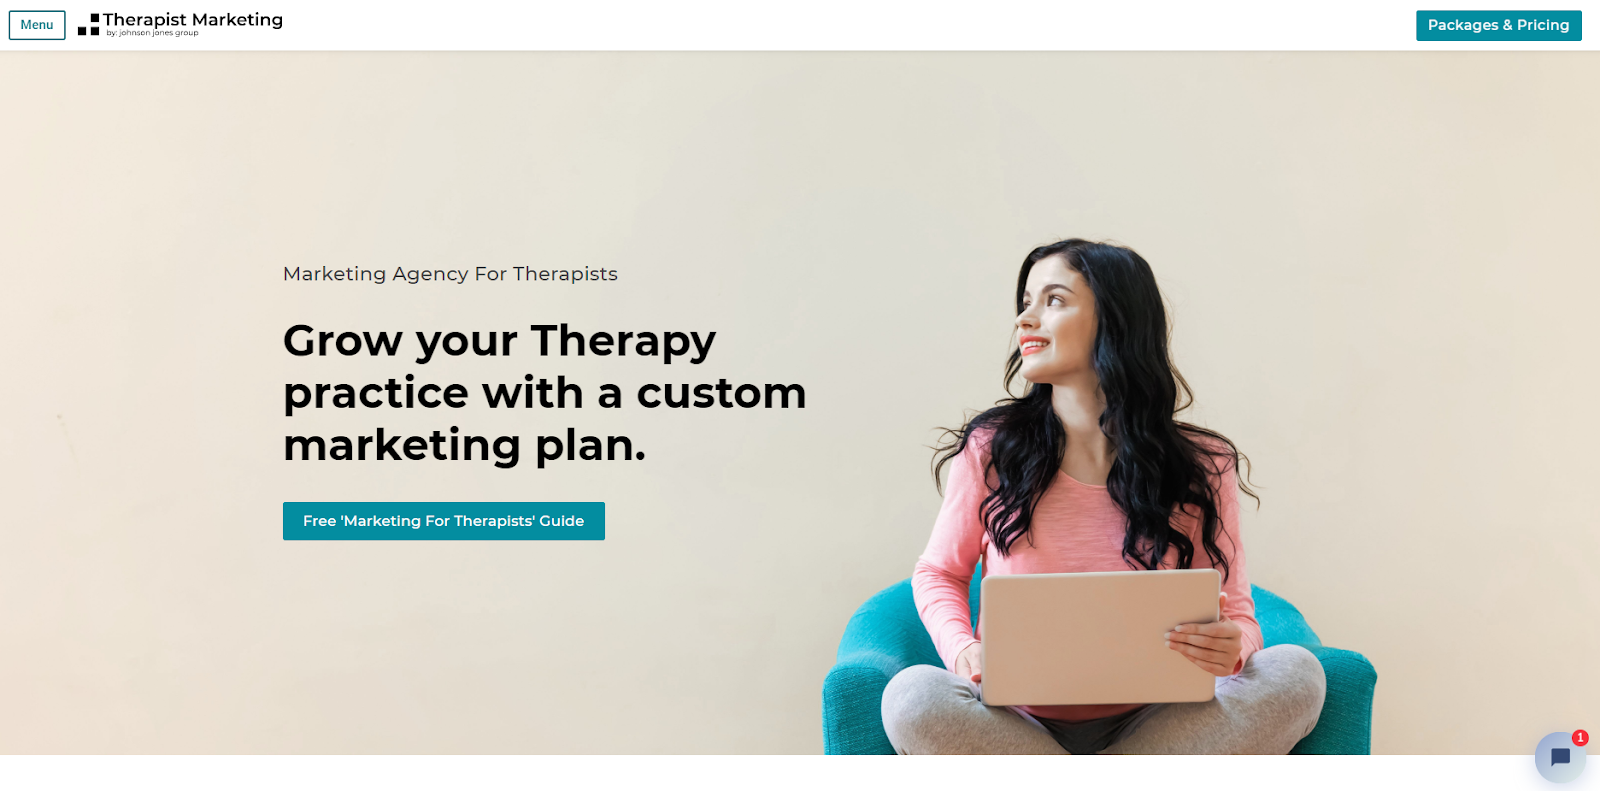 Therapy Ads: 14 Mind-Blowing Ways to Advertise Your Private Practice [Update 2020] 3